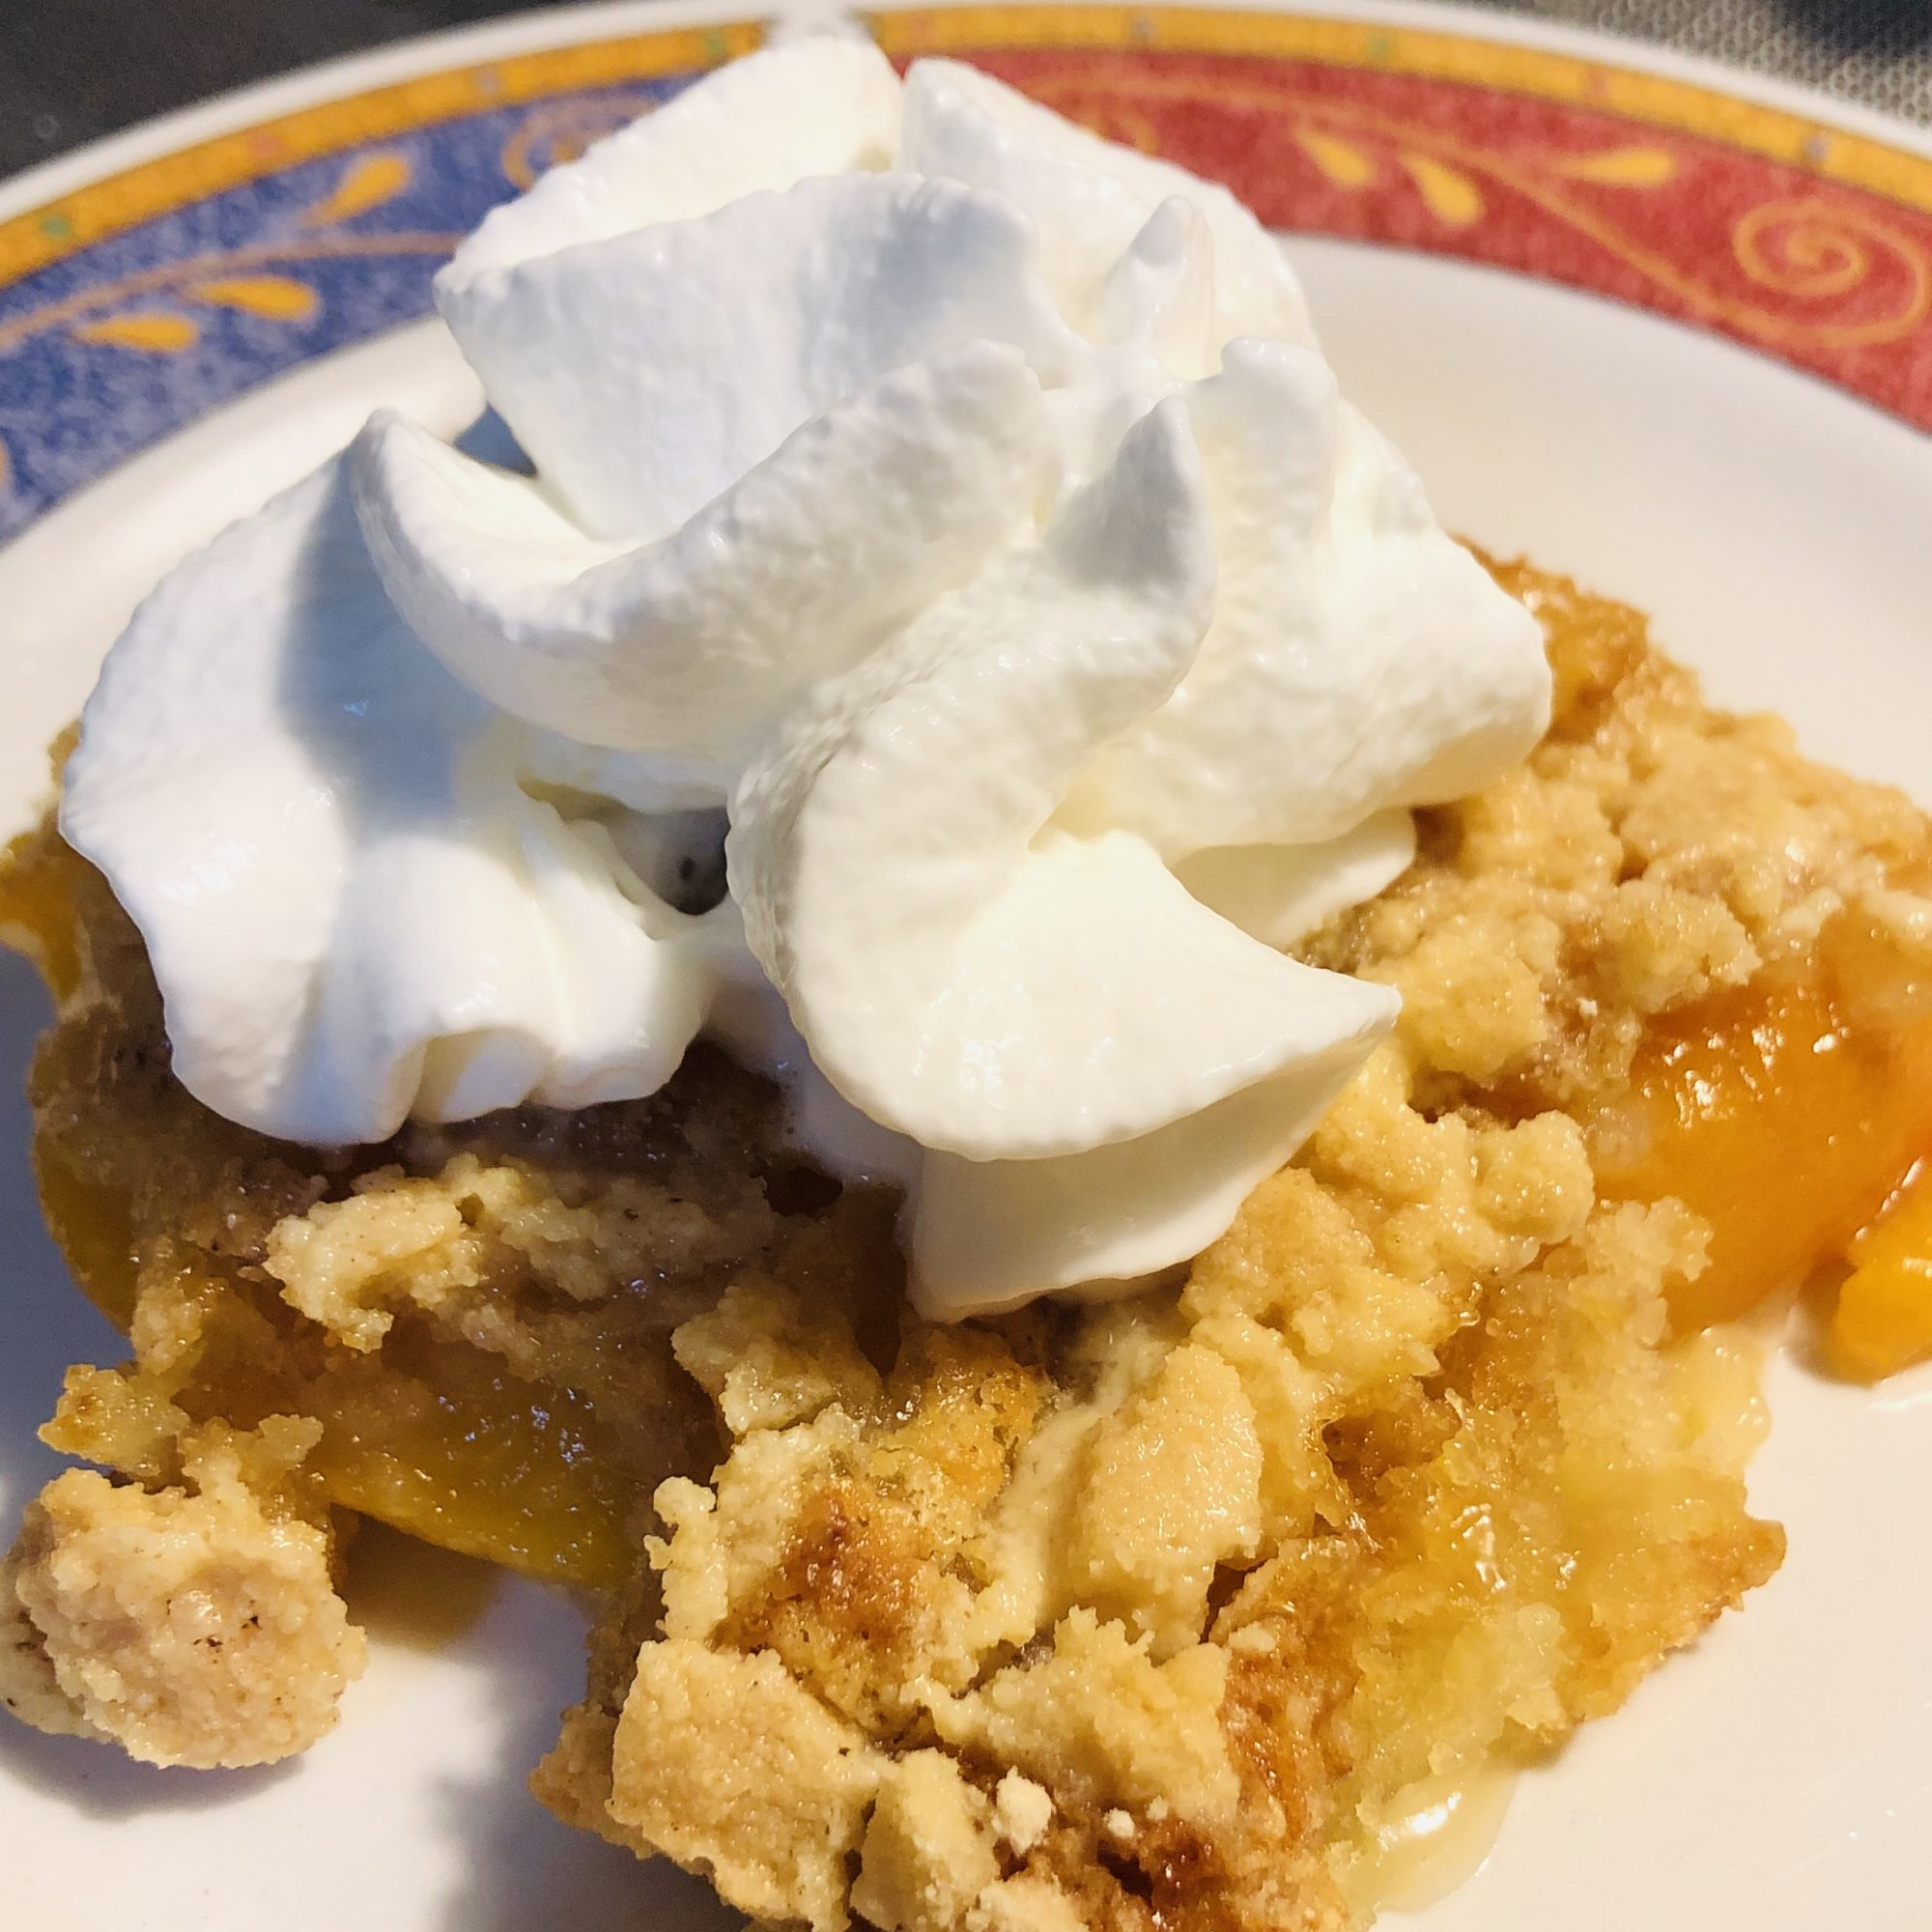 a plate with peach dump cake and whipped cream